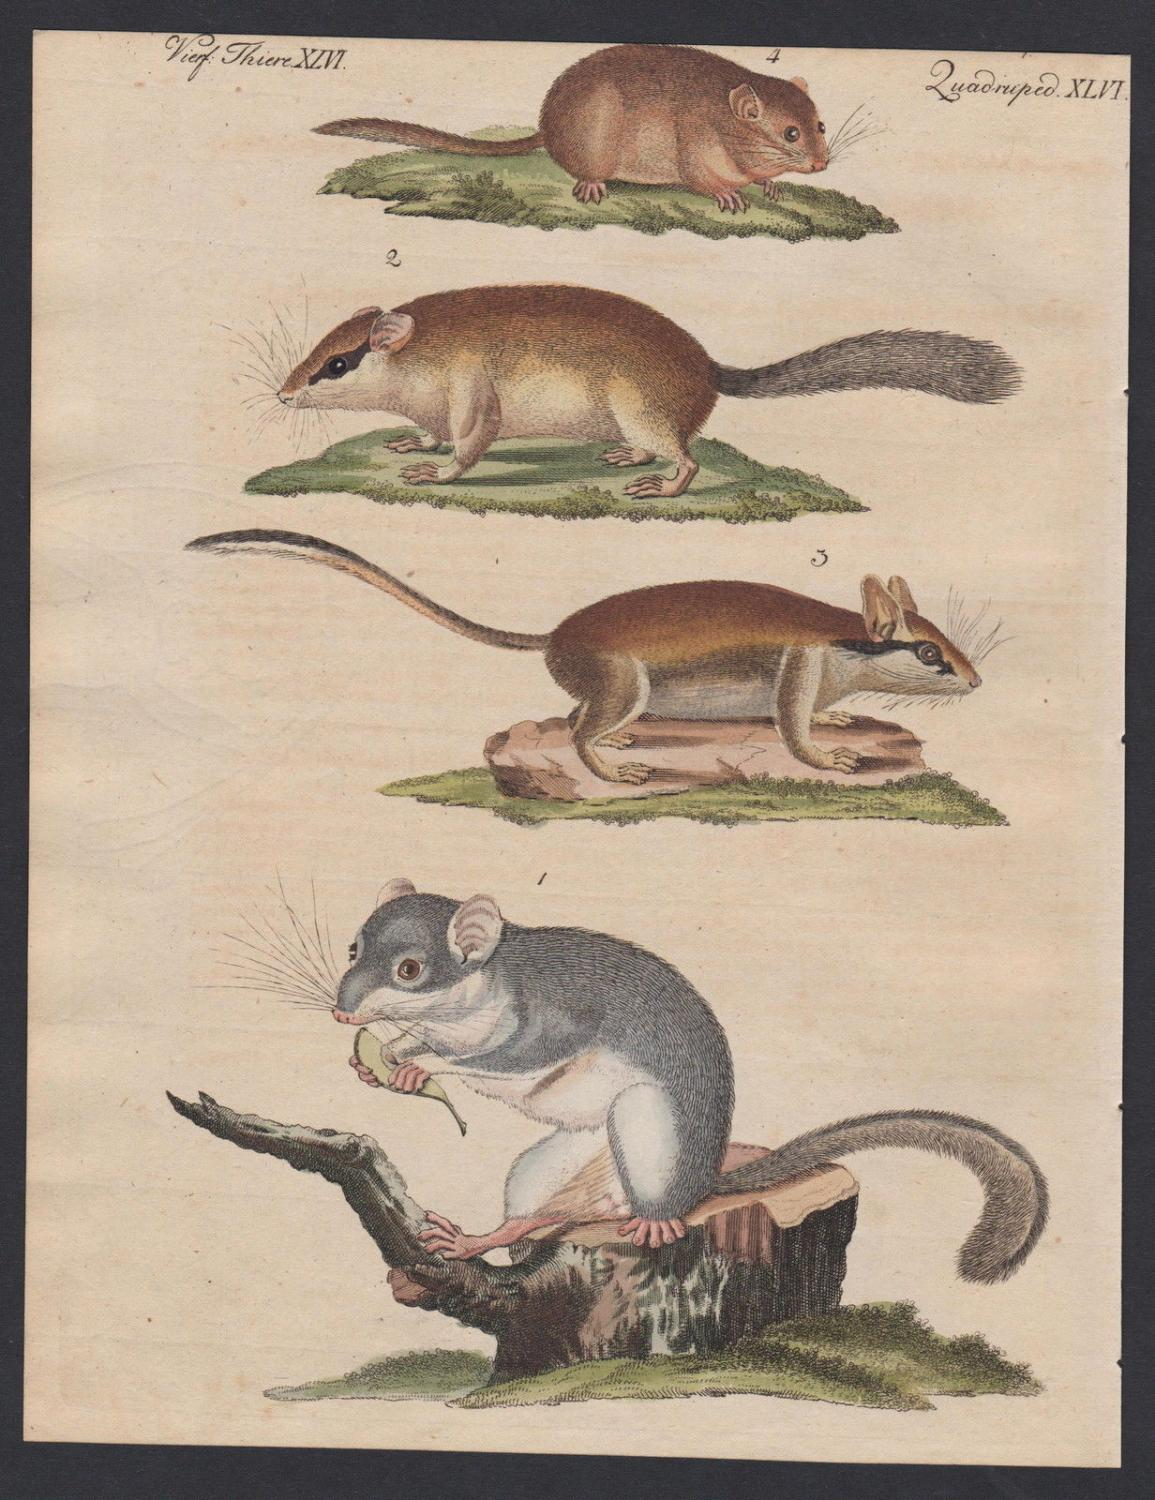 dormouse mouse mice Bilche Schläfer engraving antique